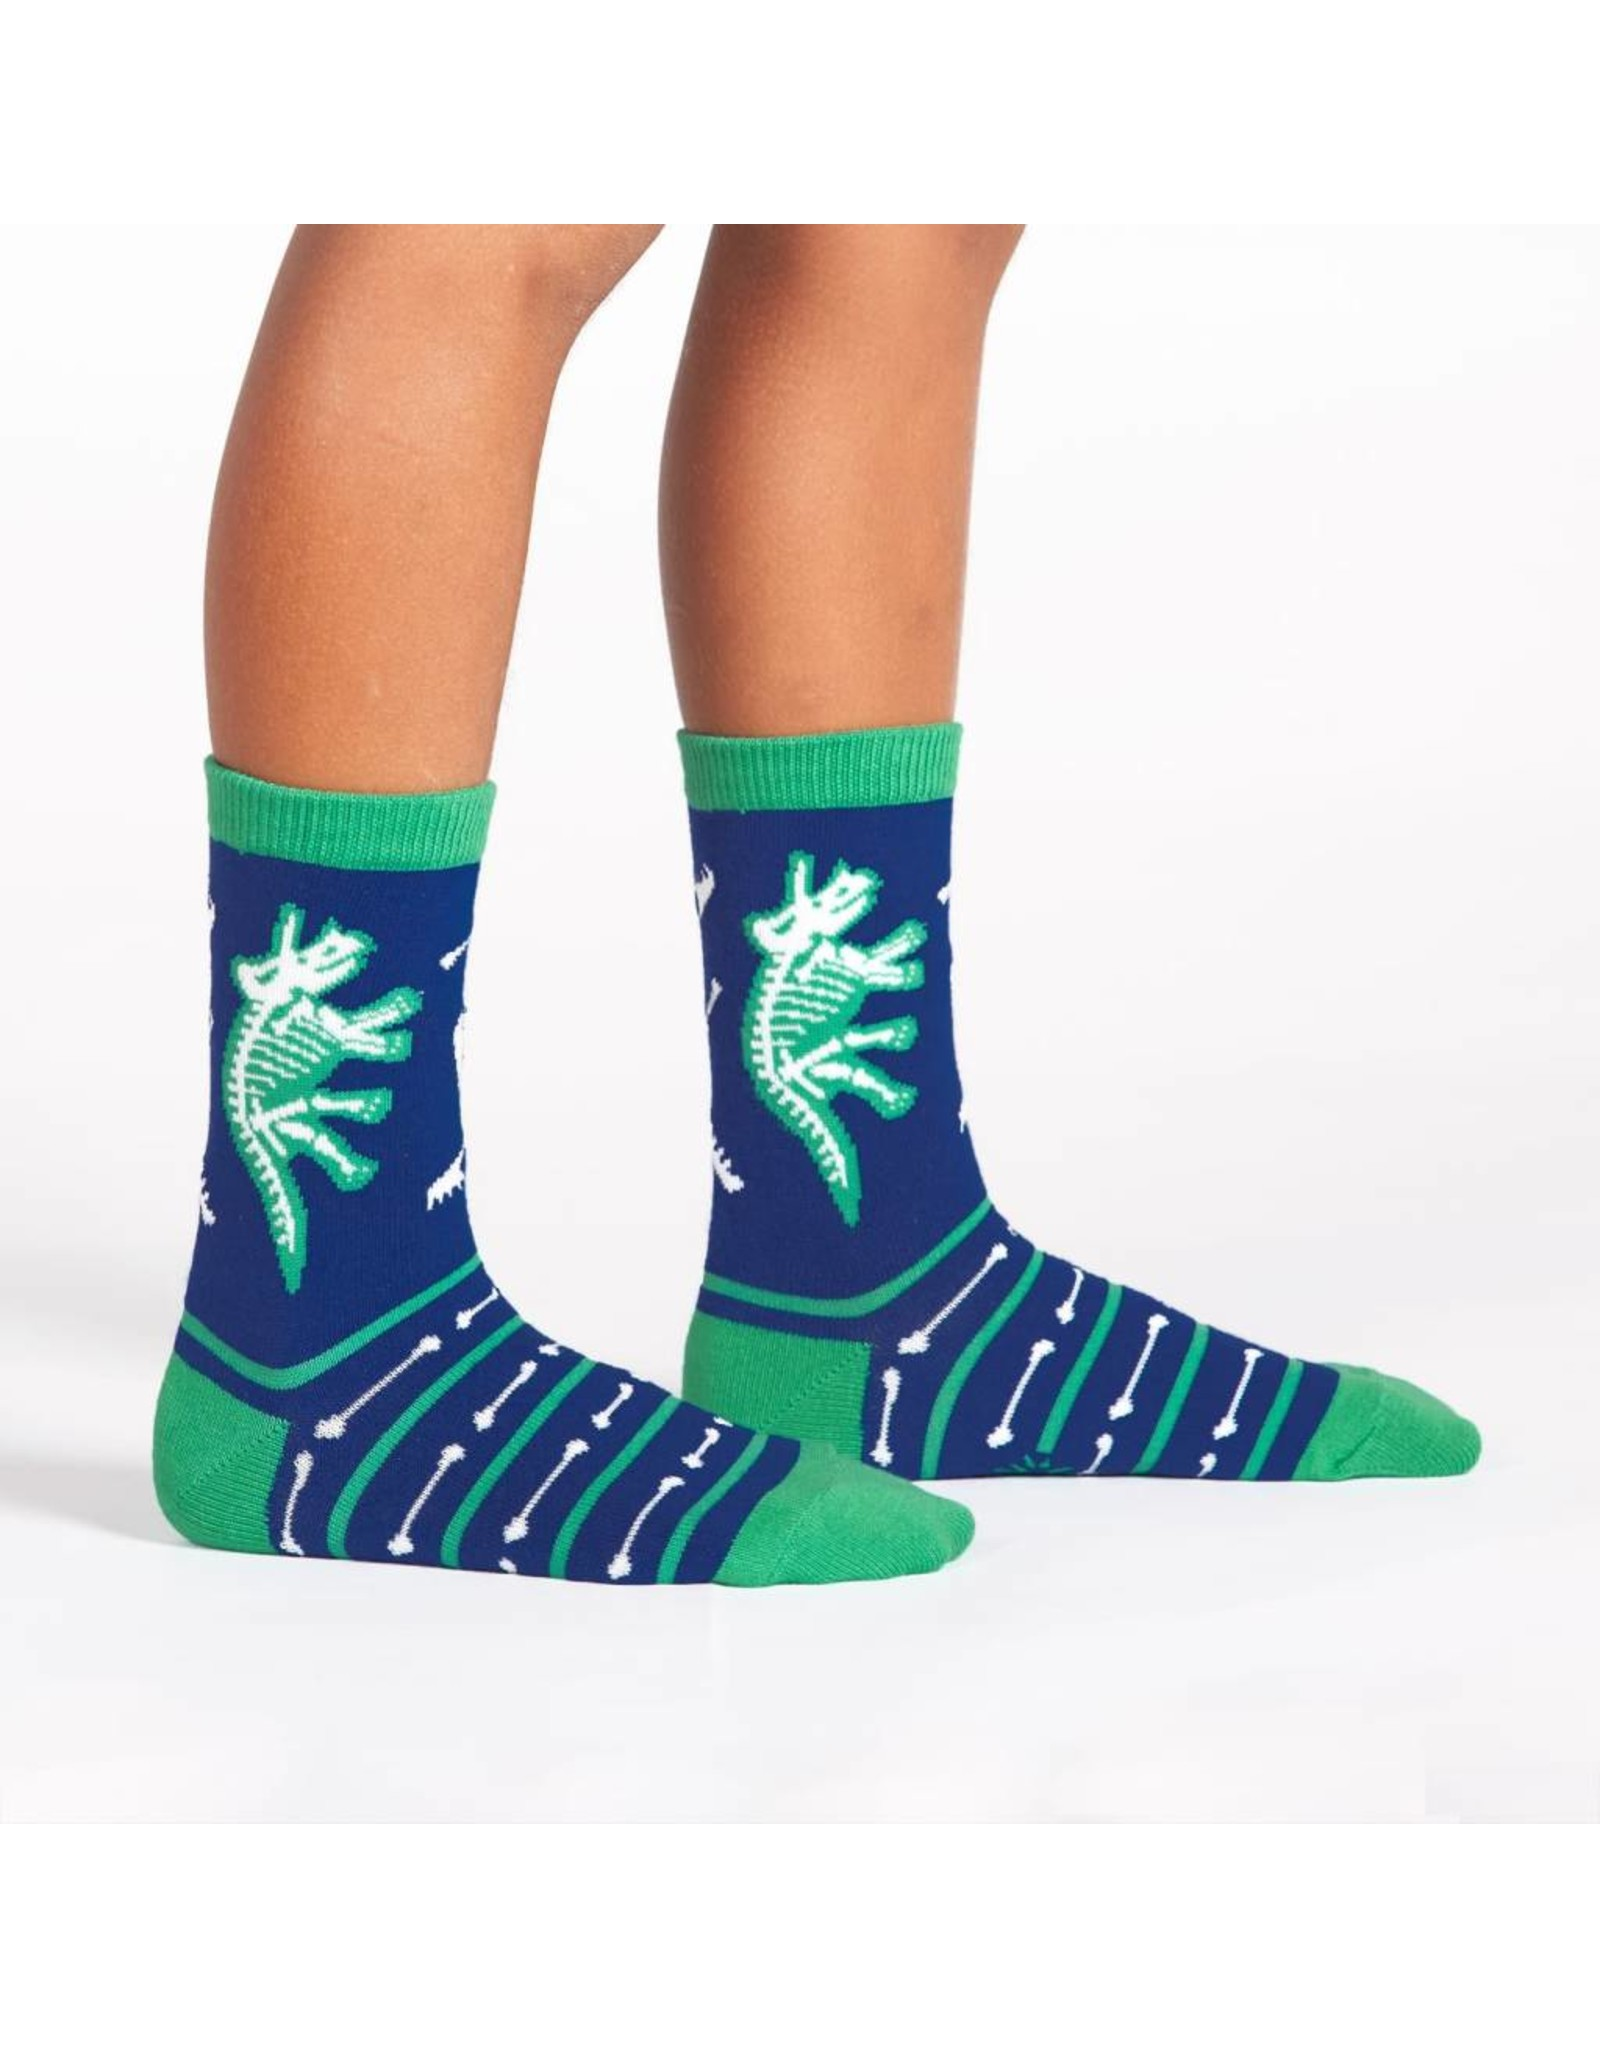 SOCK IT TO ME - Youth Arch-eology Crew Socks